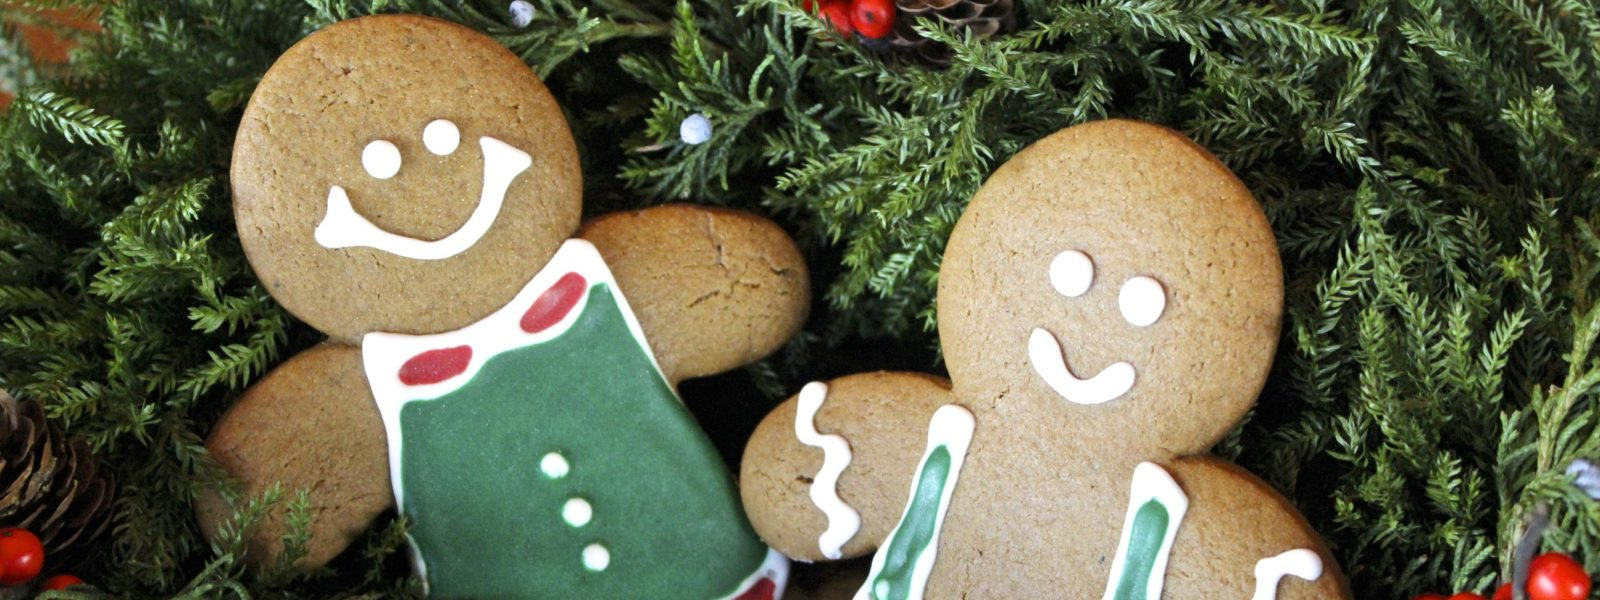 Two decorated gingerbread cookies in a wreath.